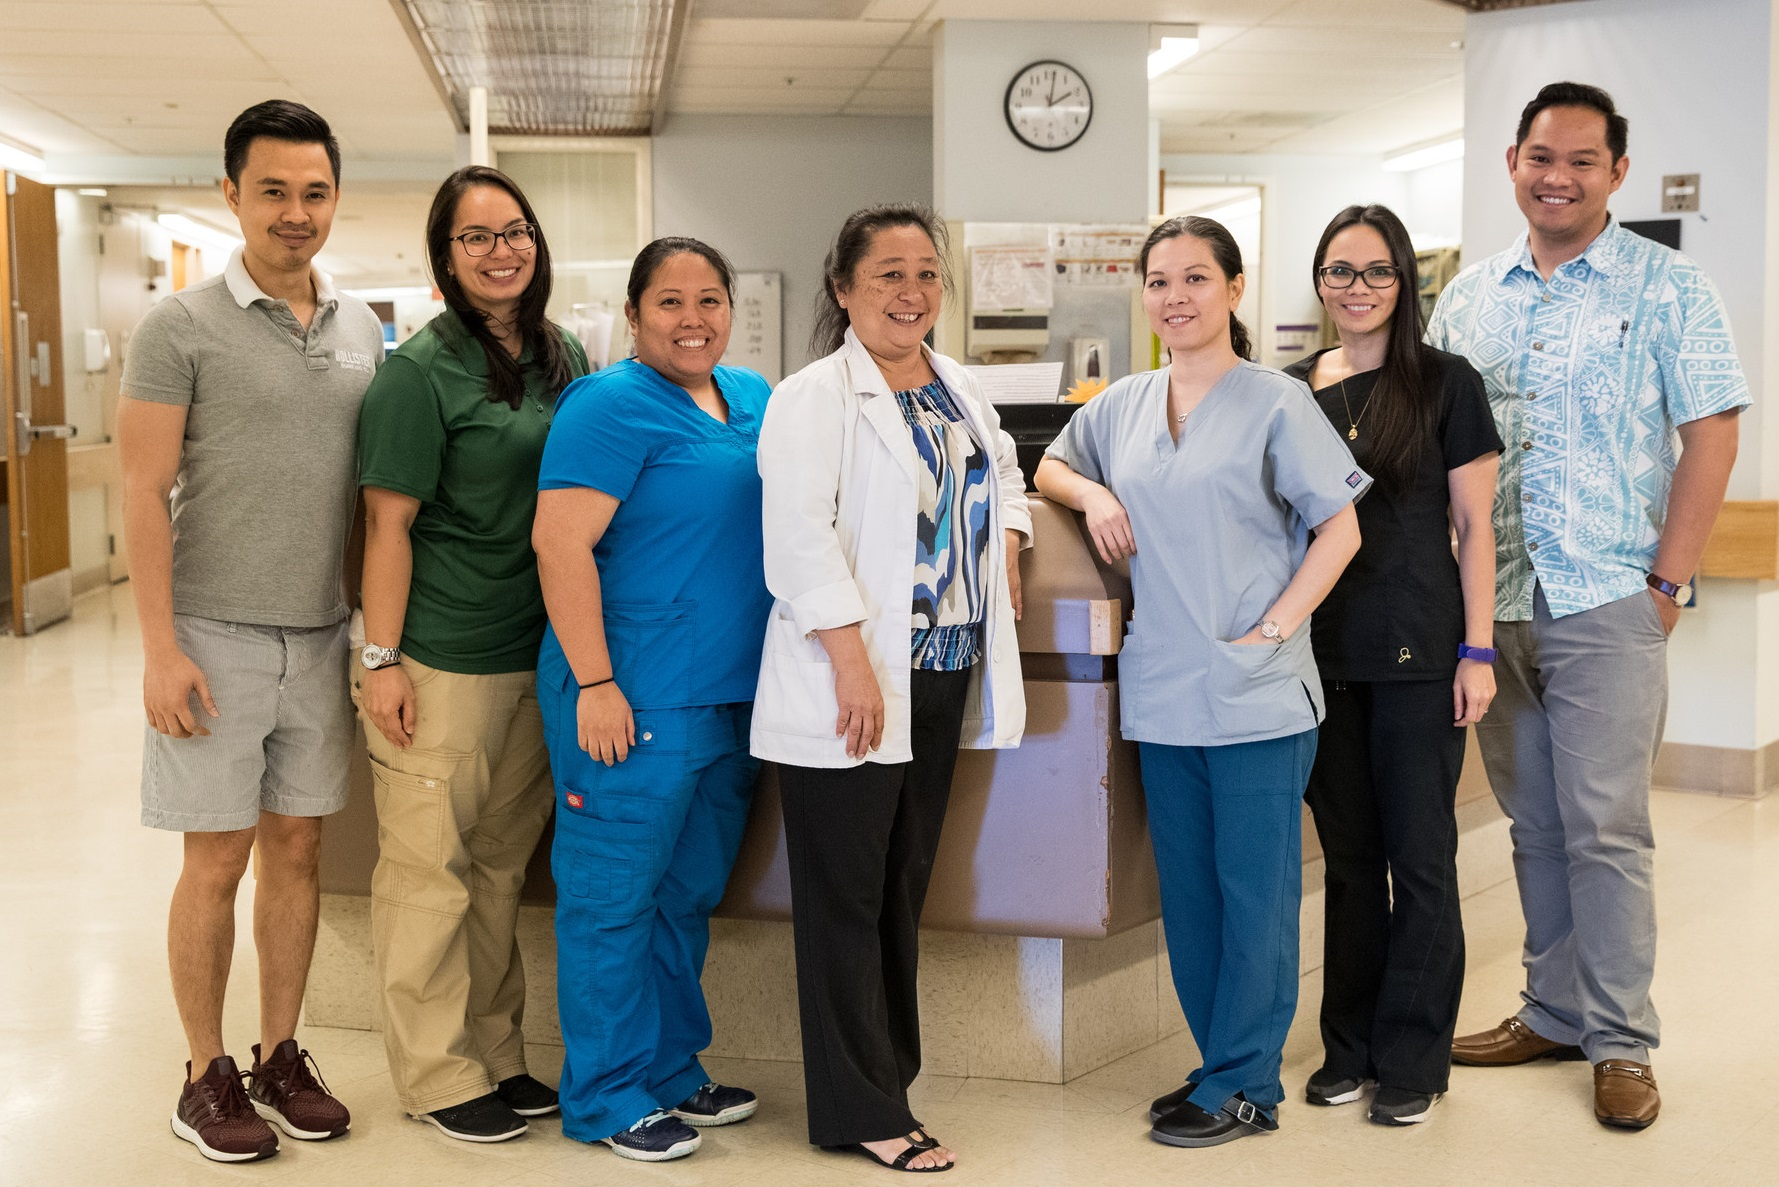 group of health care workers posing at a hospital nurses' station